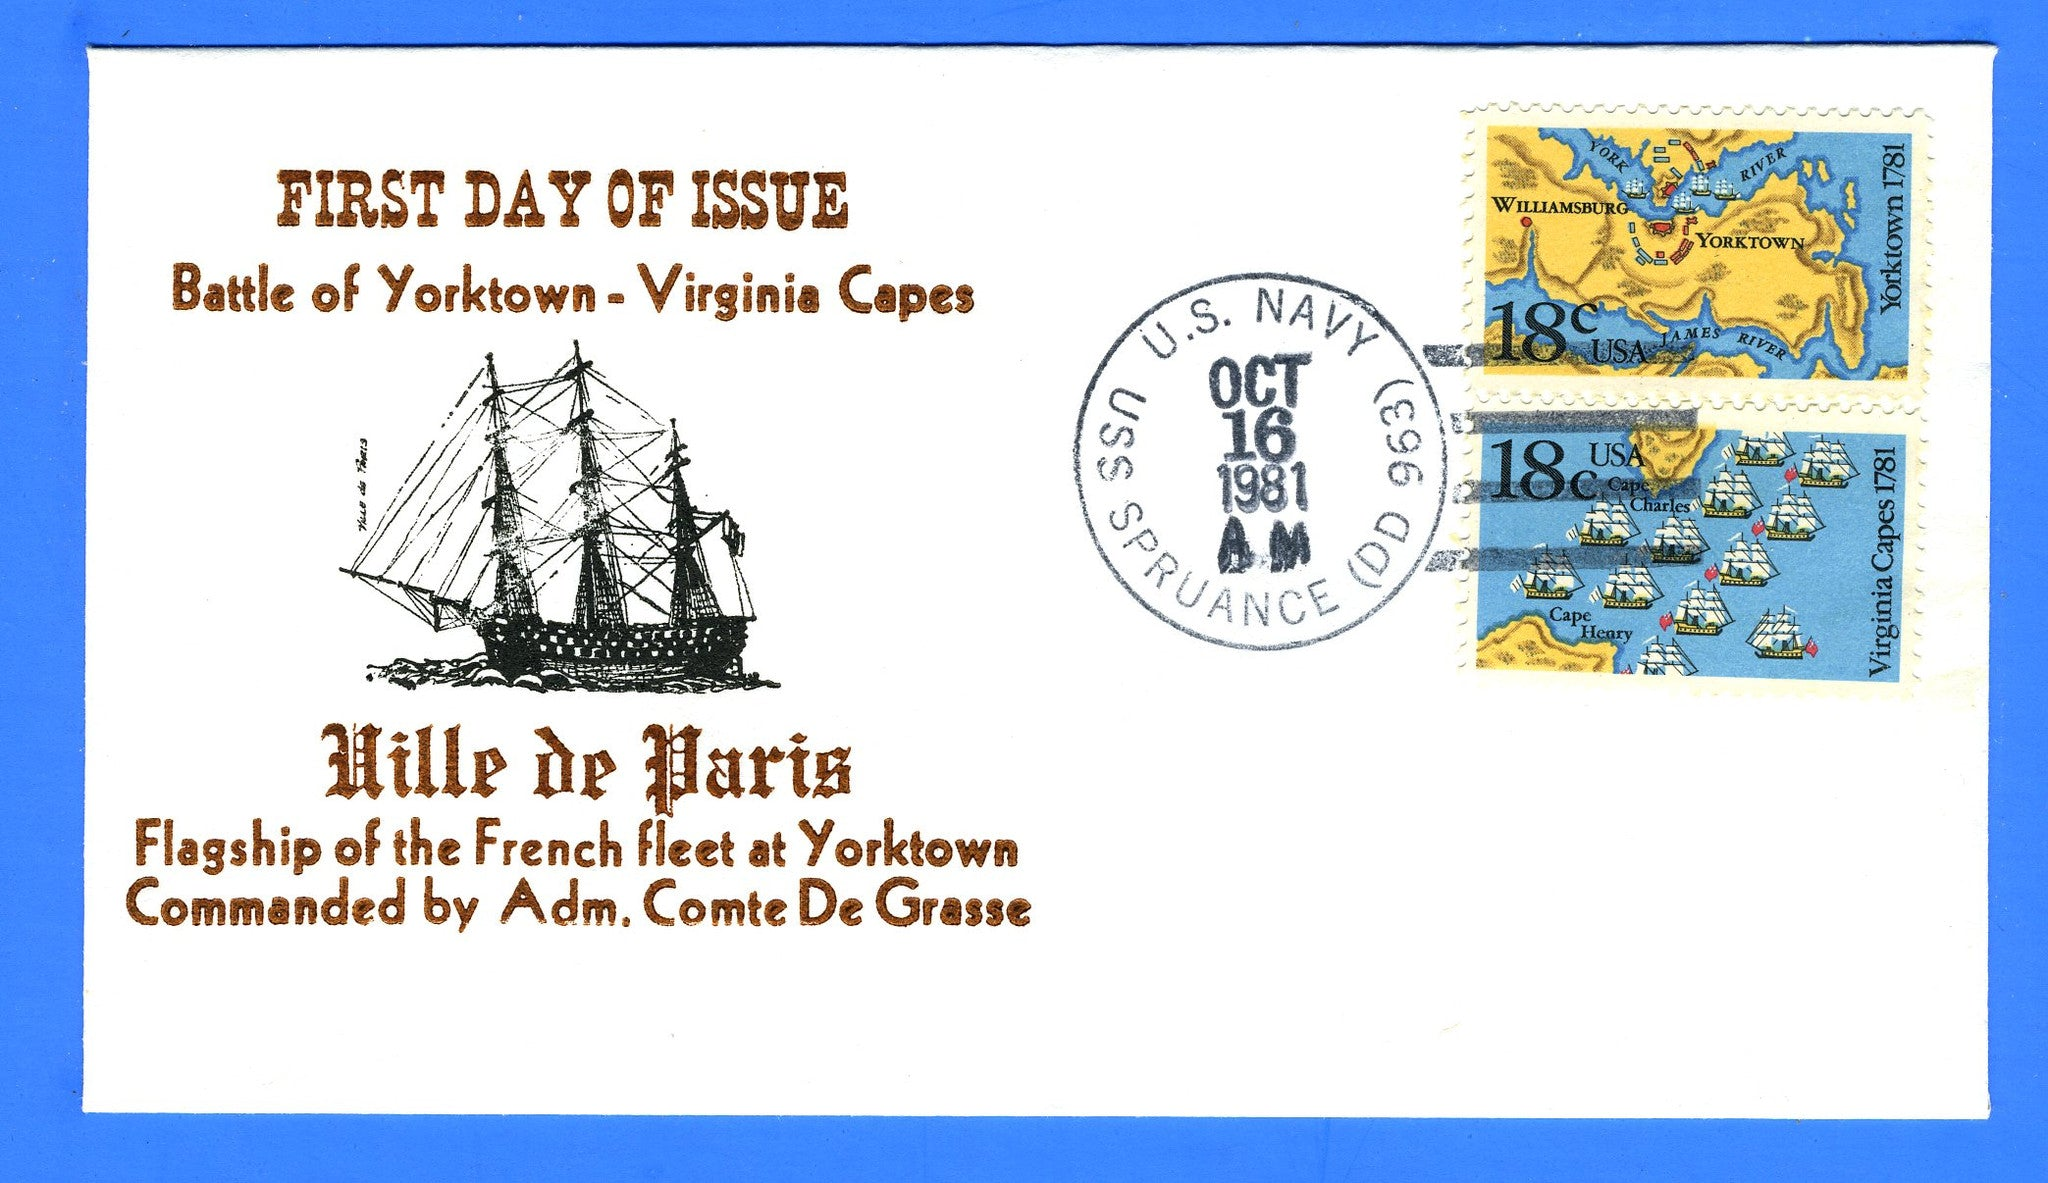 Scott 1938a Battles Yorktown & Virginia Capes First Day Cover w/Unofficial USS Spruance DD-963 First Day Cancel